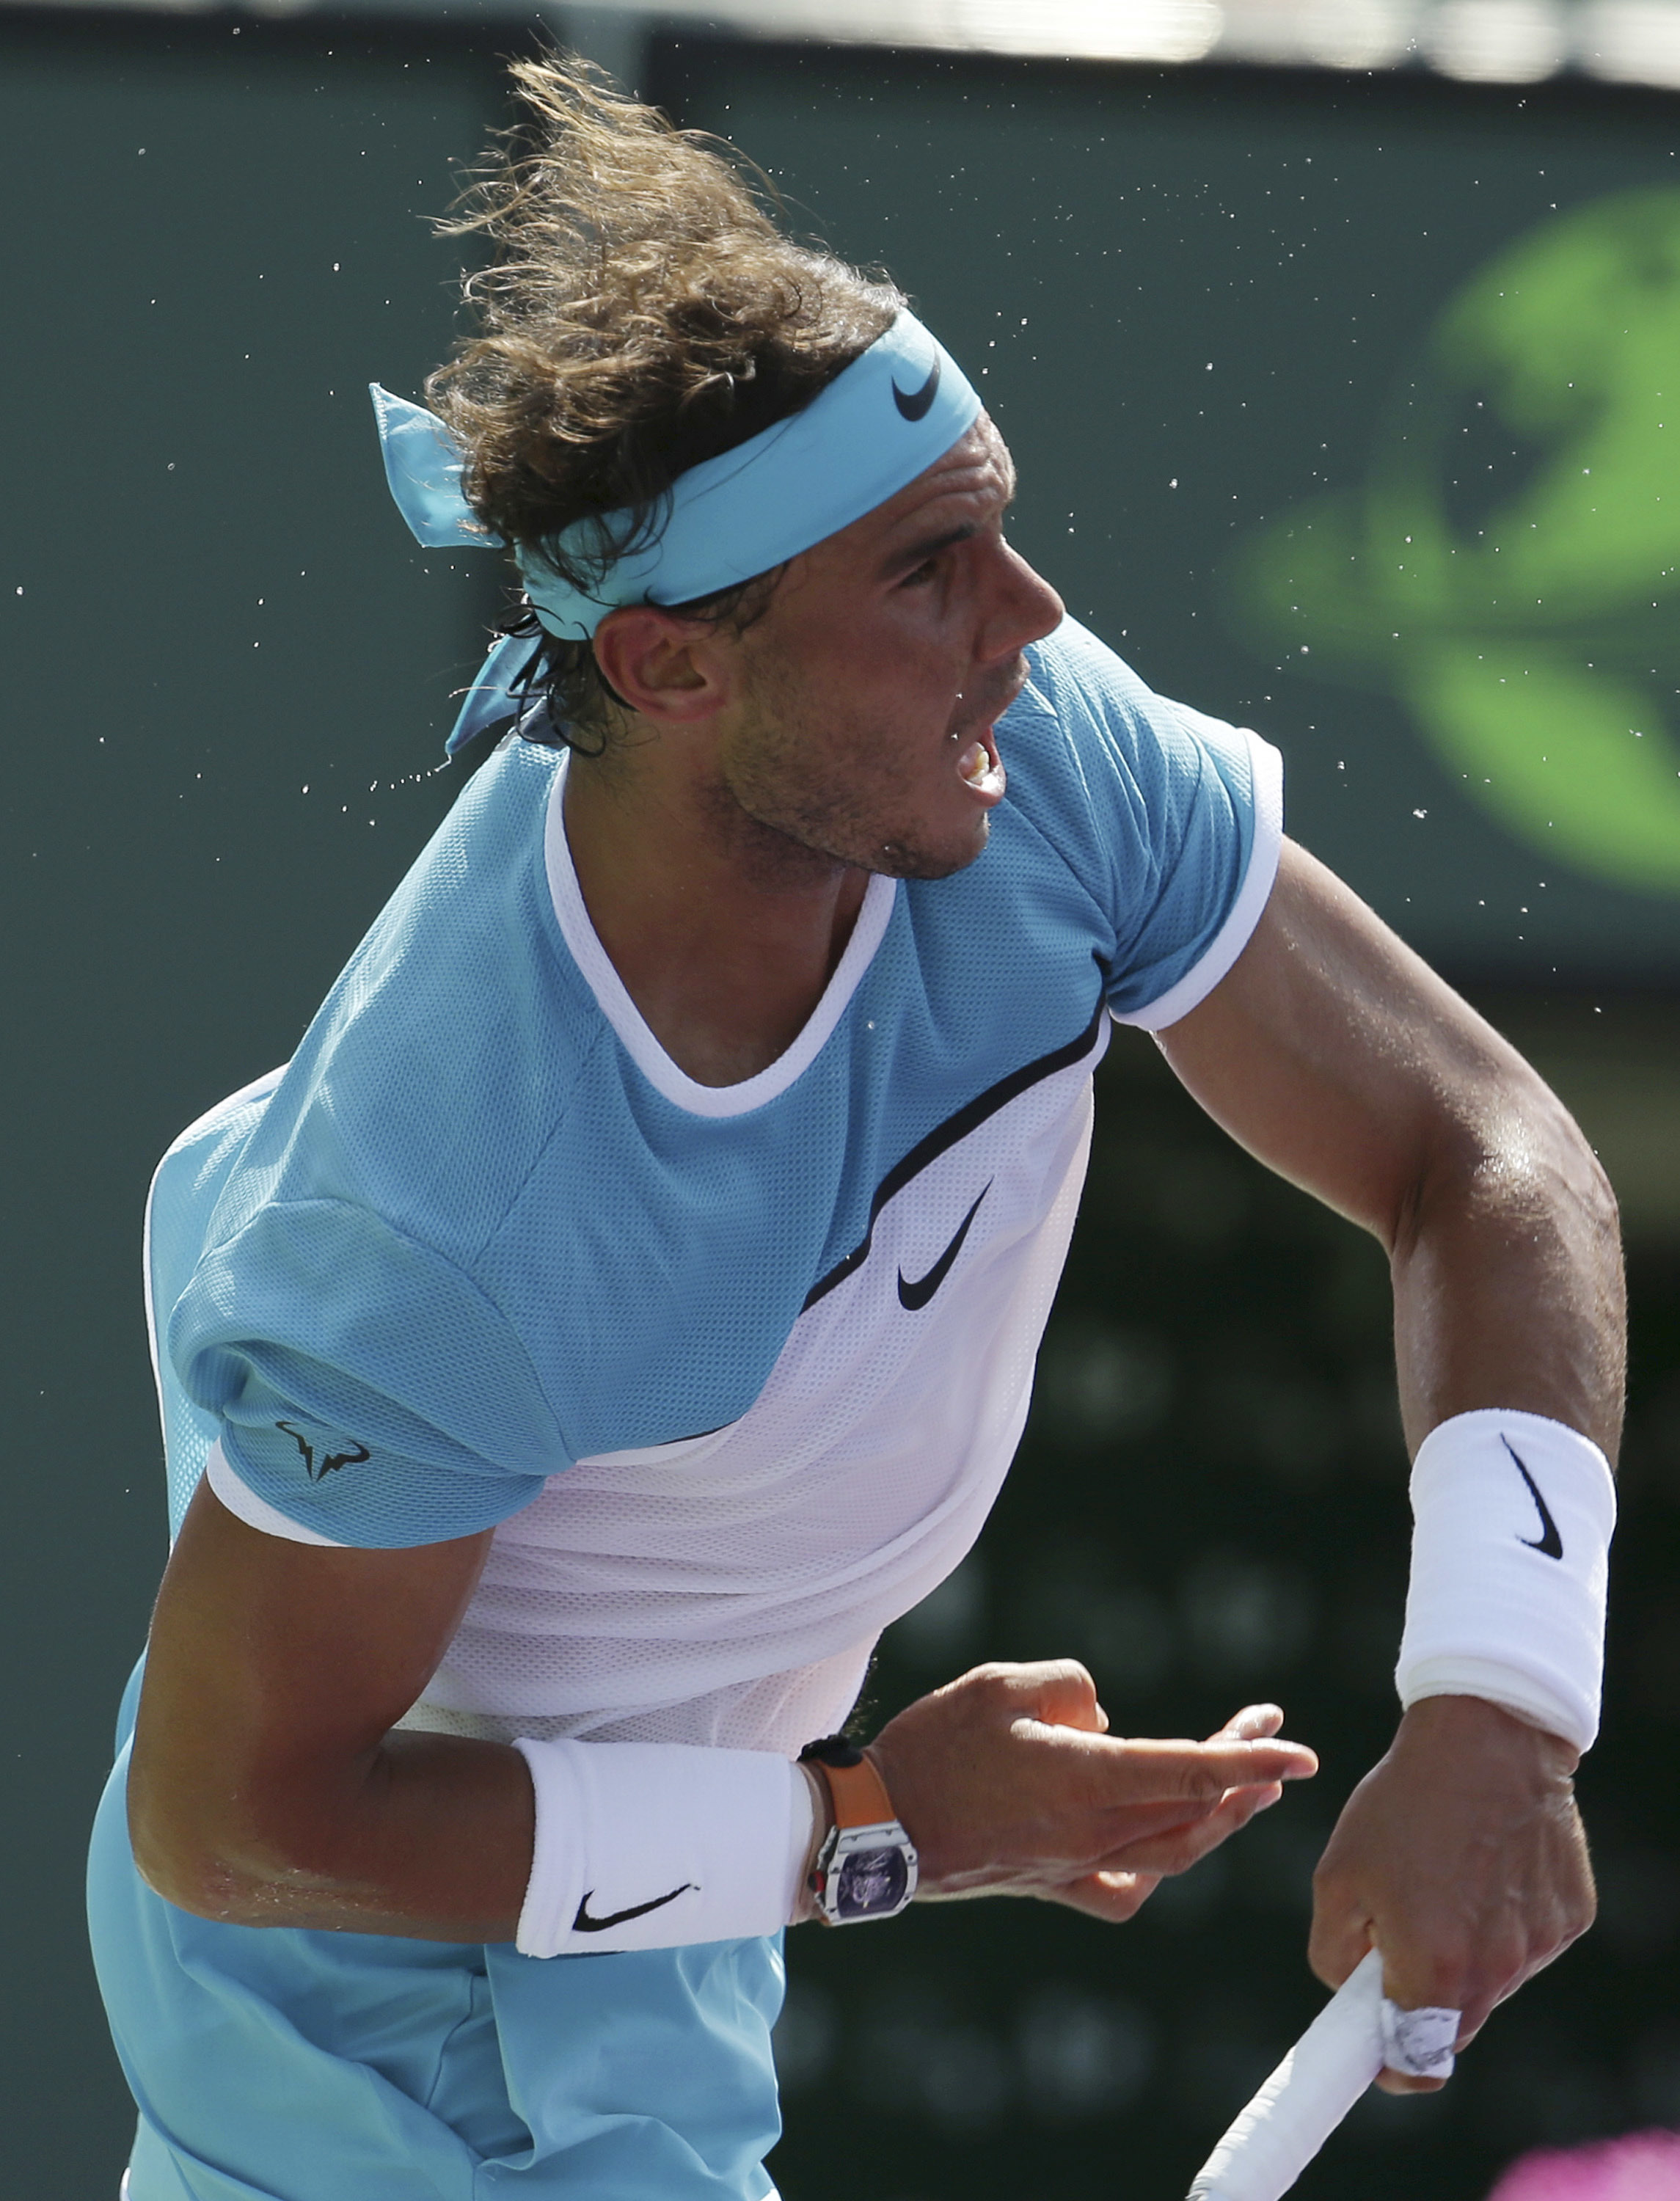 Rafael Nadal, of Spain, serves to Damir Dzumhur during their match at the Miami Open tennis tournament, Saturday, March 26, 2016, in Key Biscayne, Fla. (AP Photo/Lynne Sladkyhttp://uploaded.net/file/7ppbusl9/documentary.su-Hunting.Hitler.Series.1.1of8.The